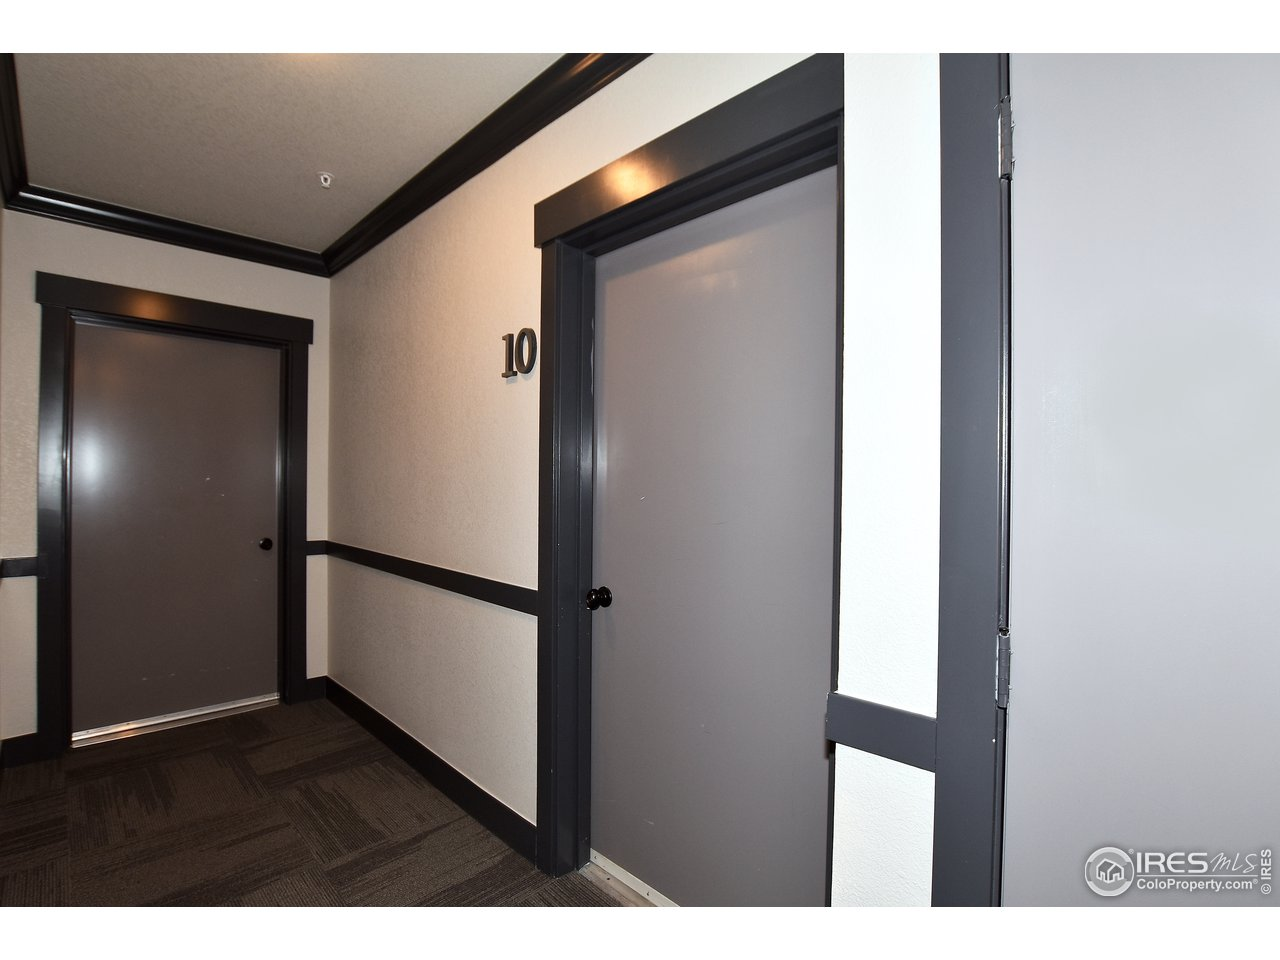 Head on downstairs to your attached oversized garage!